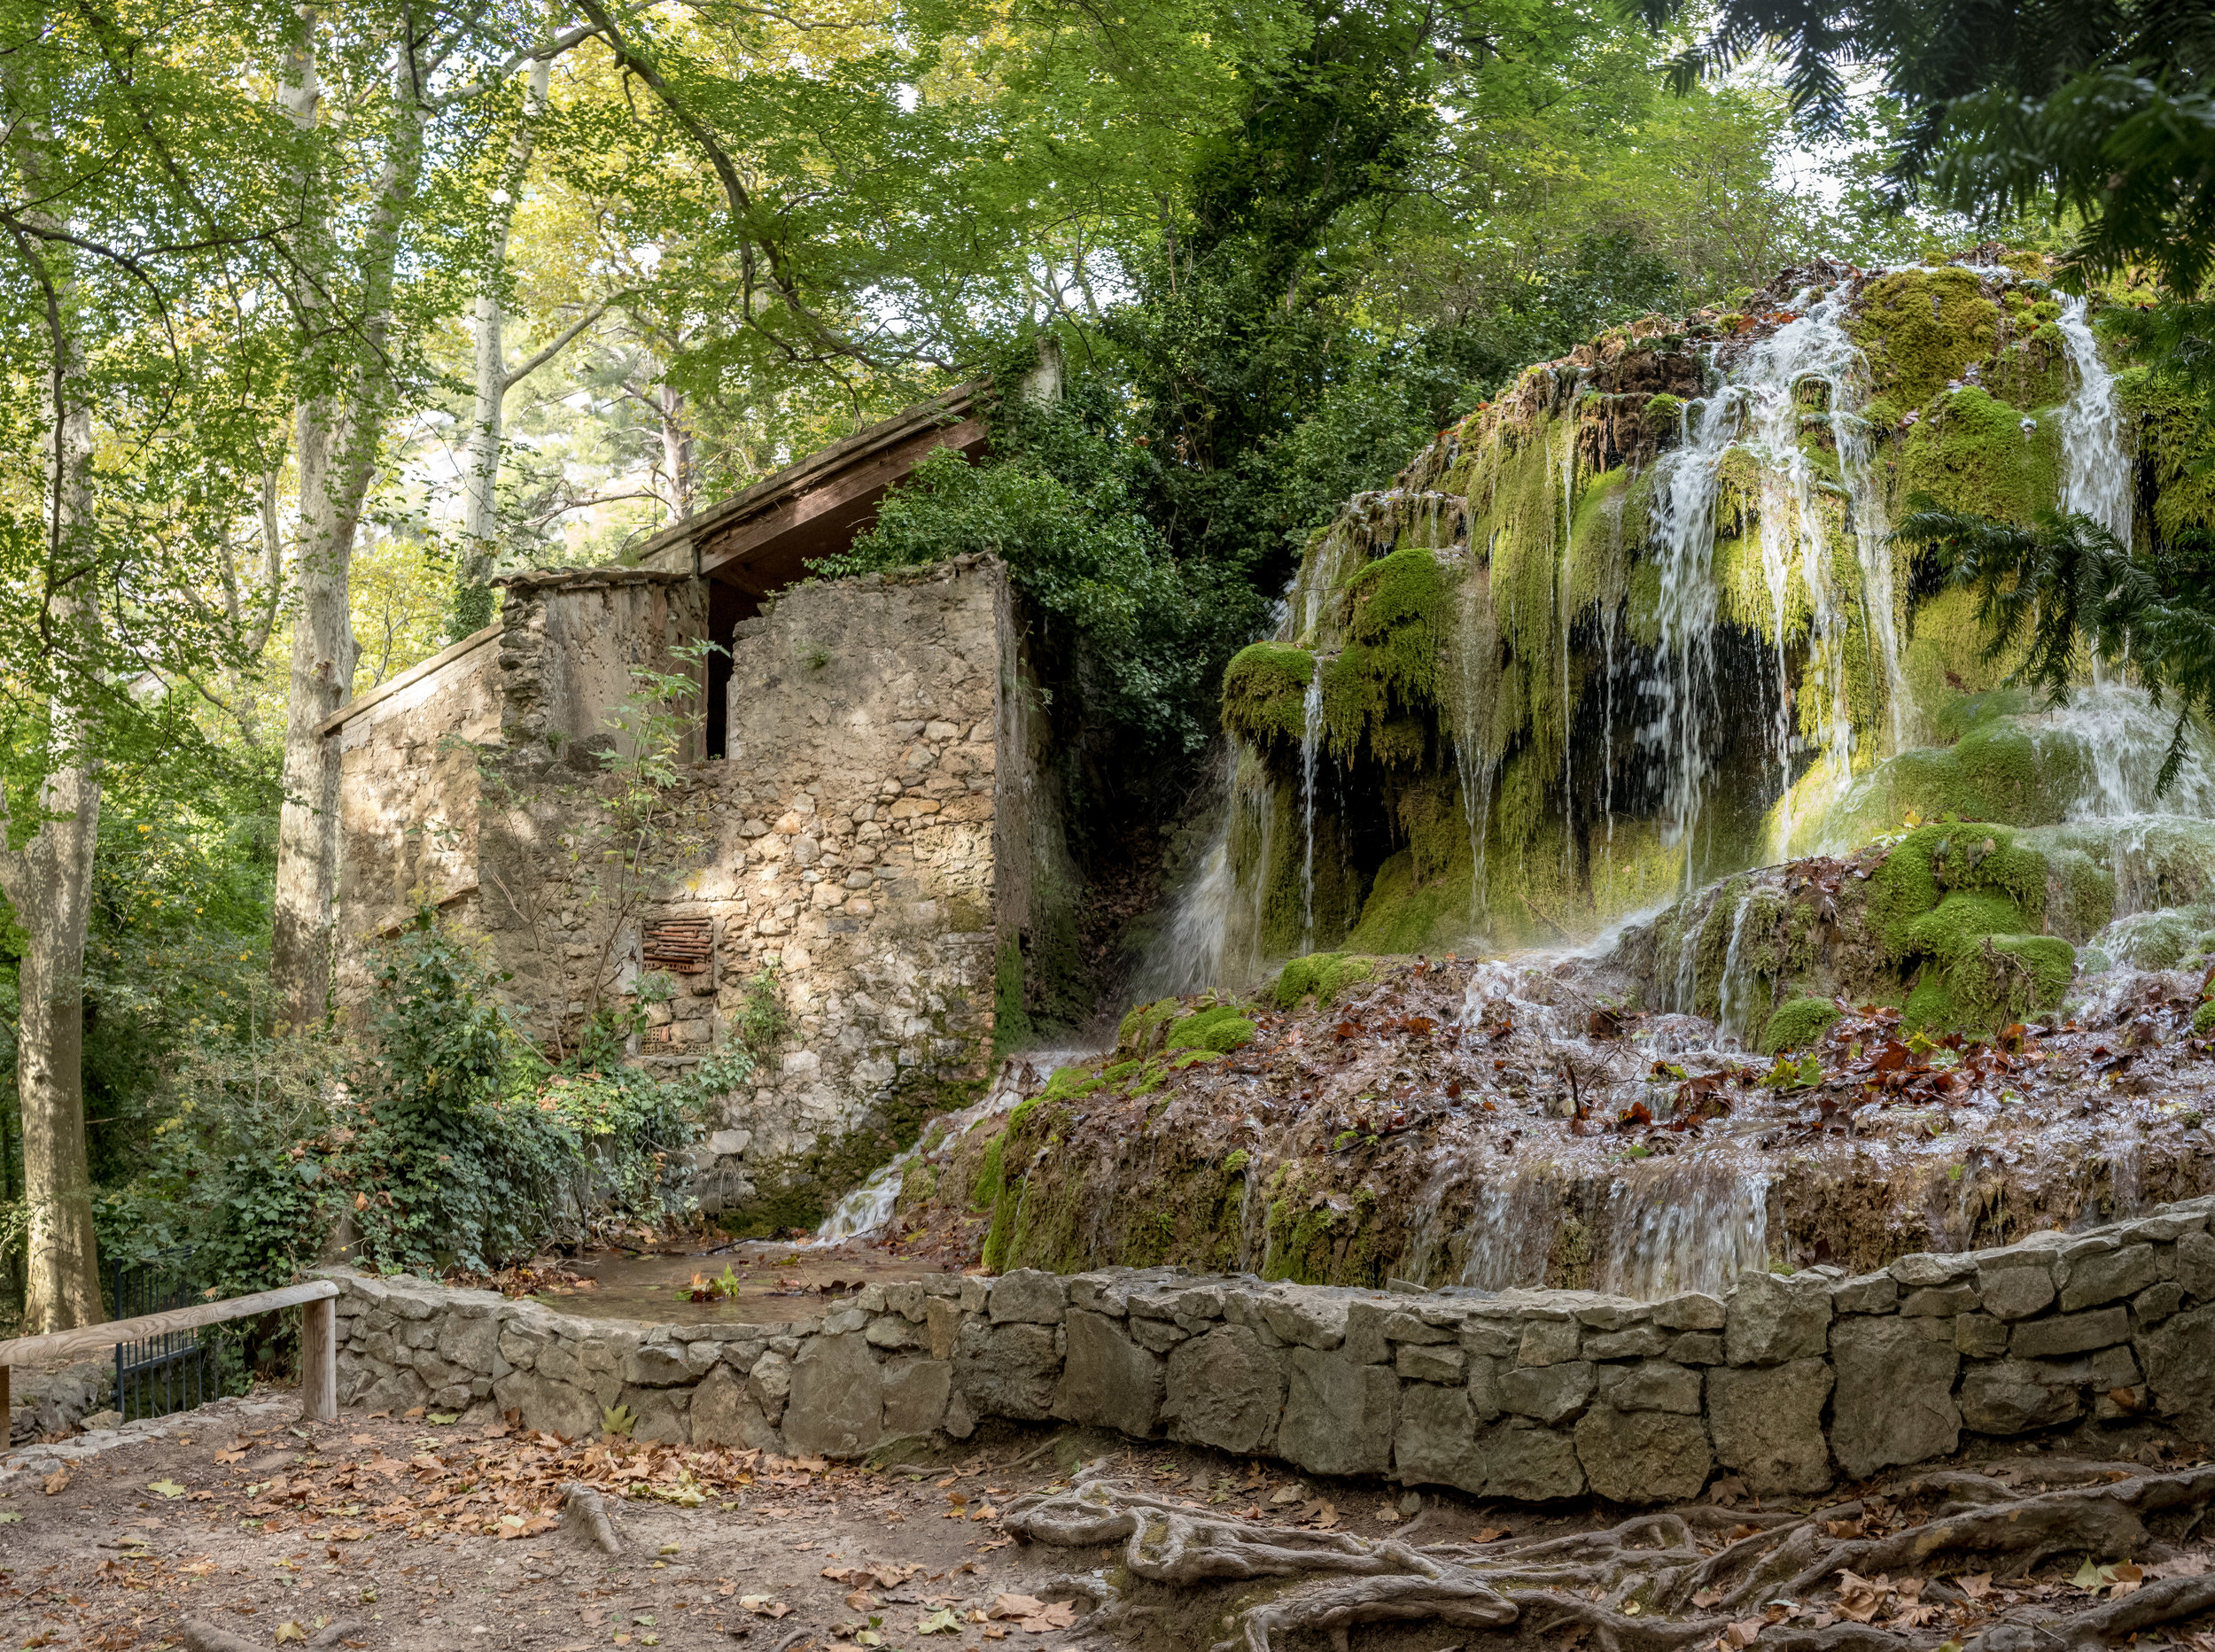 Ancient Water Mill, Parc de Saint-Pons, Gémenos, Bouches-du-Rhône, France